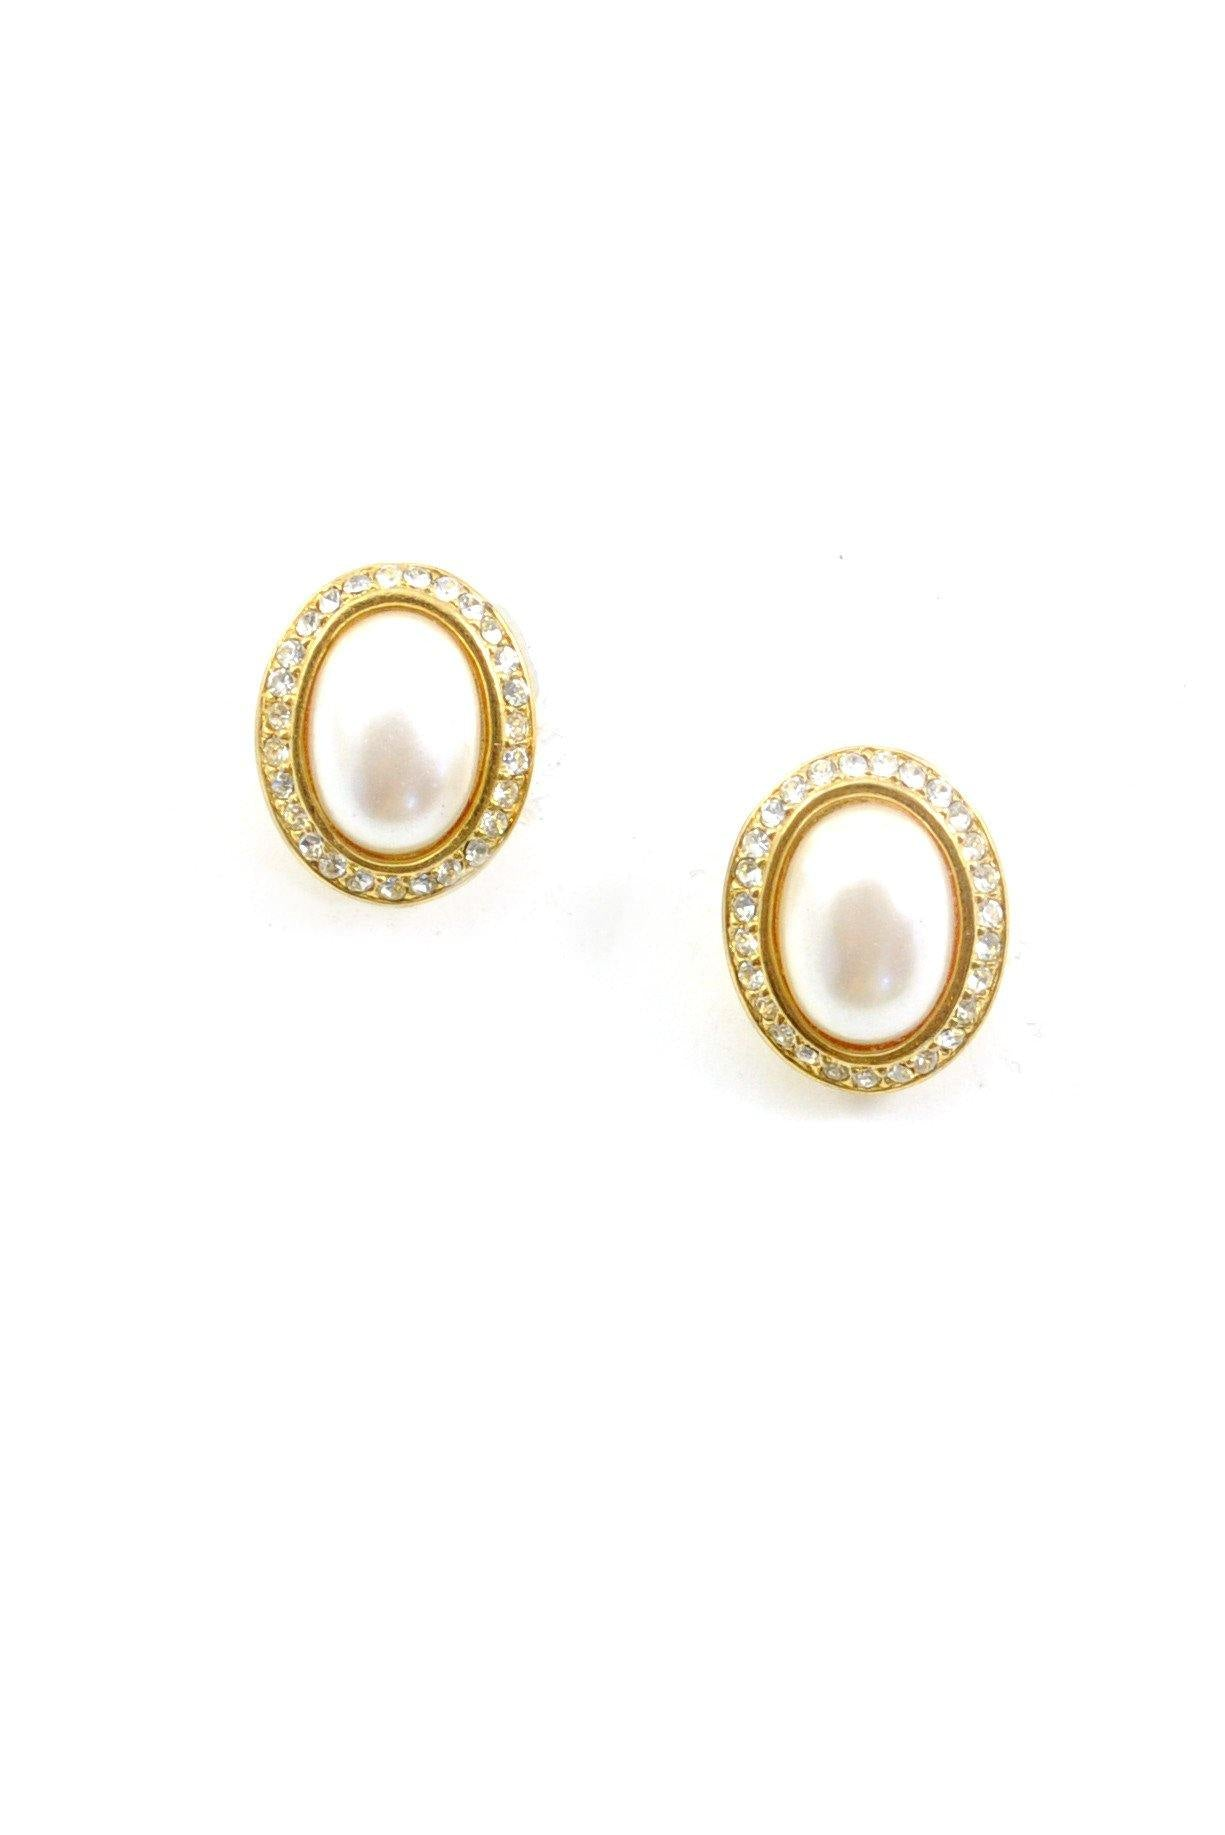 80s__Marvella__Pearl Pierced Earrings